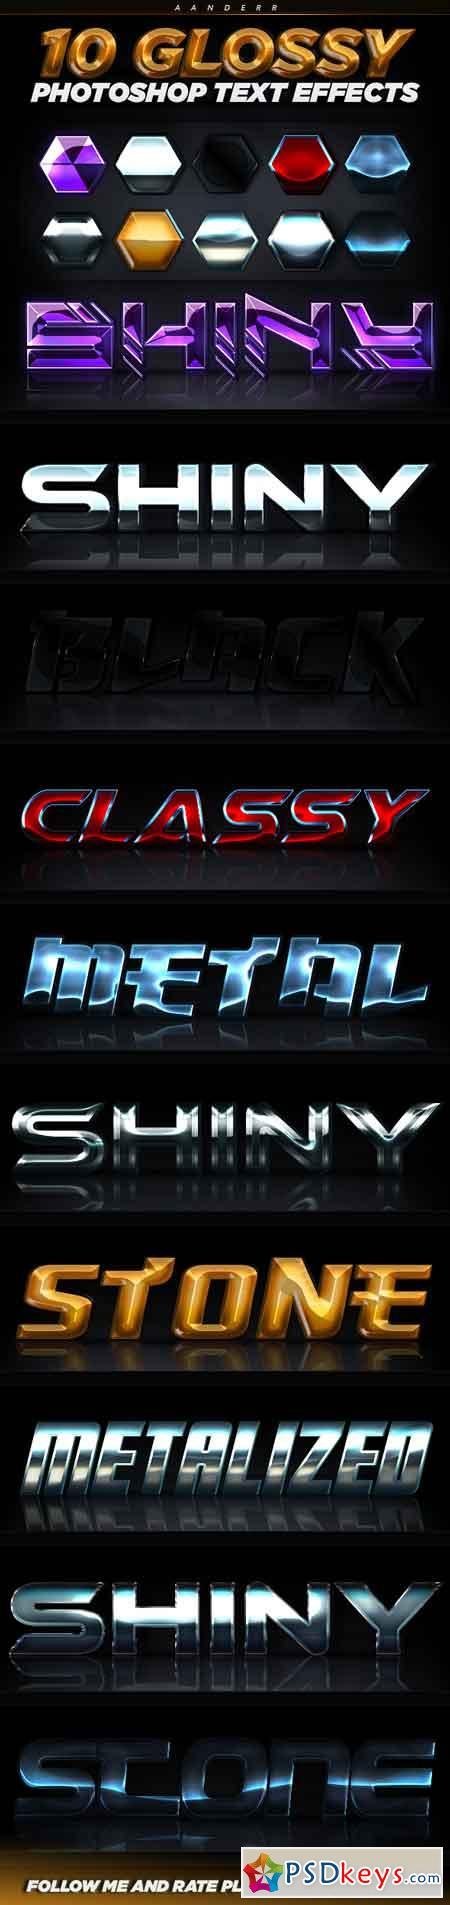 10 Glossy Photoshop Text Effects 22885599